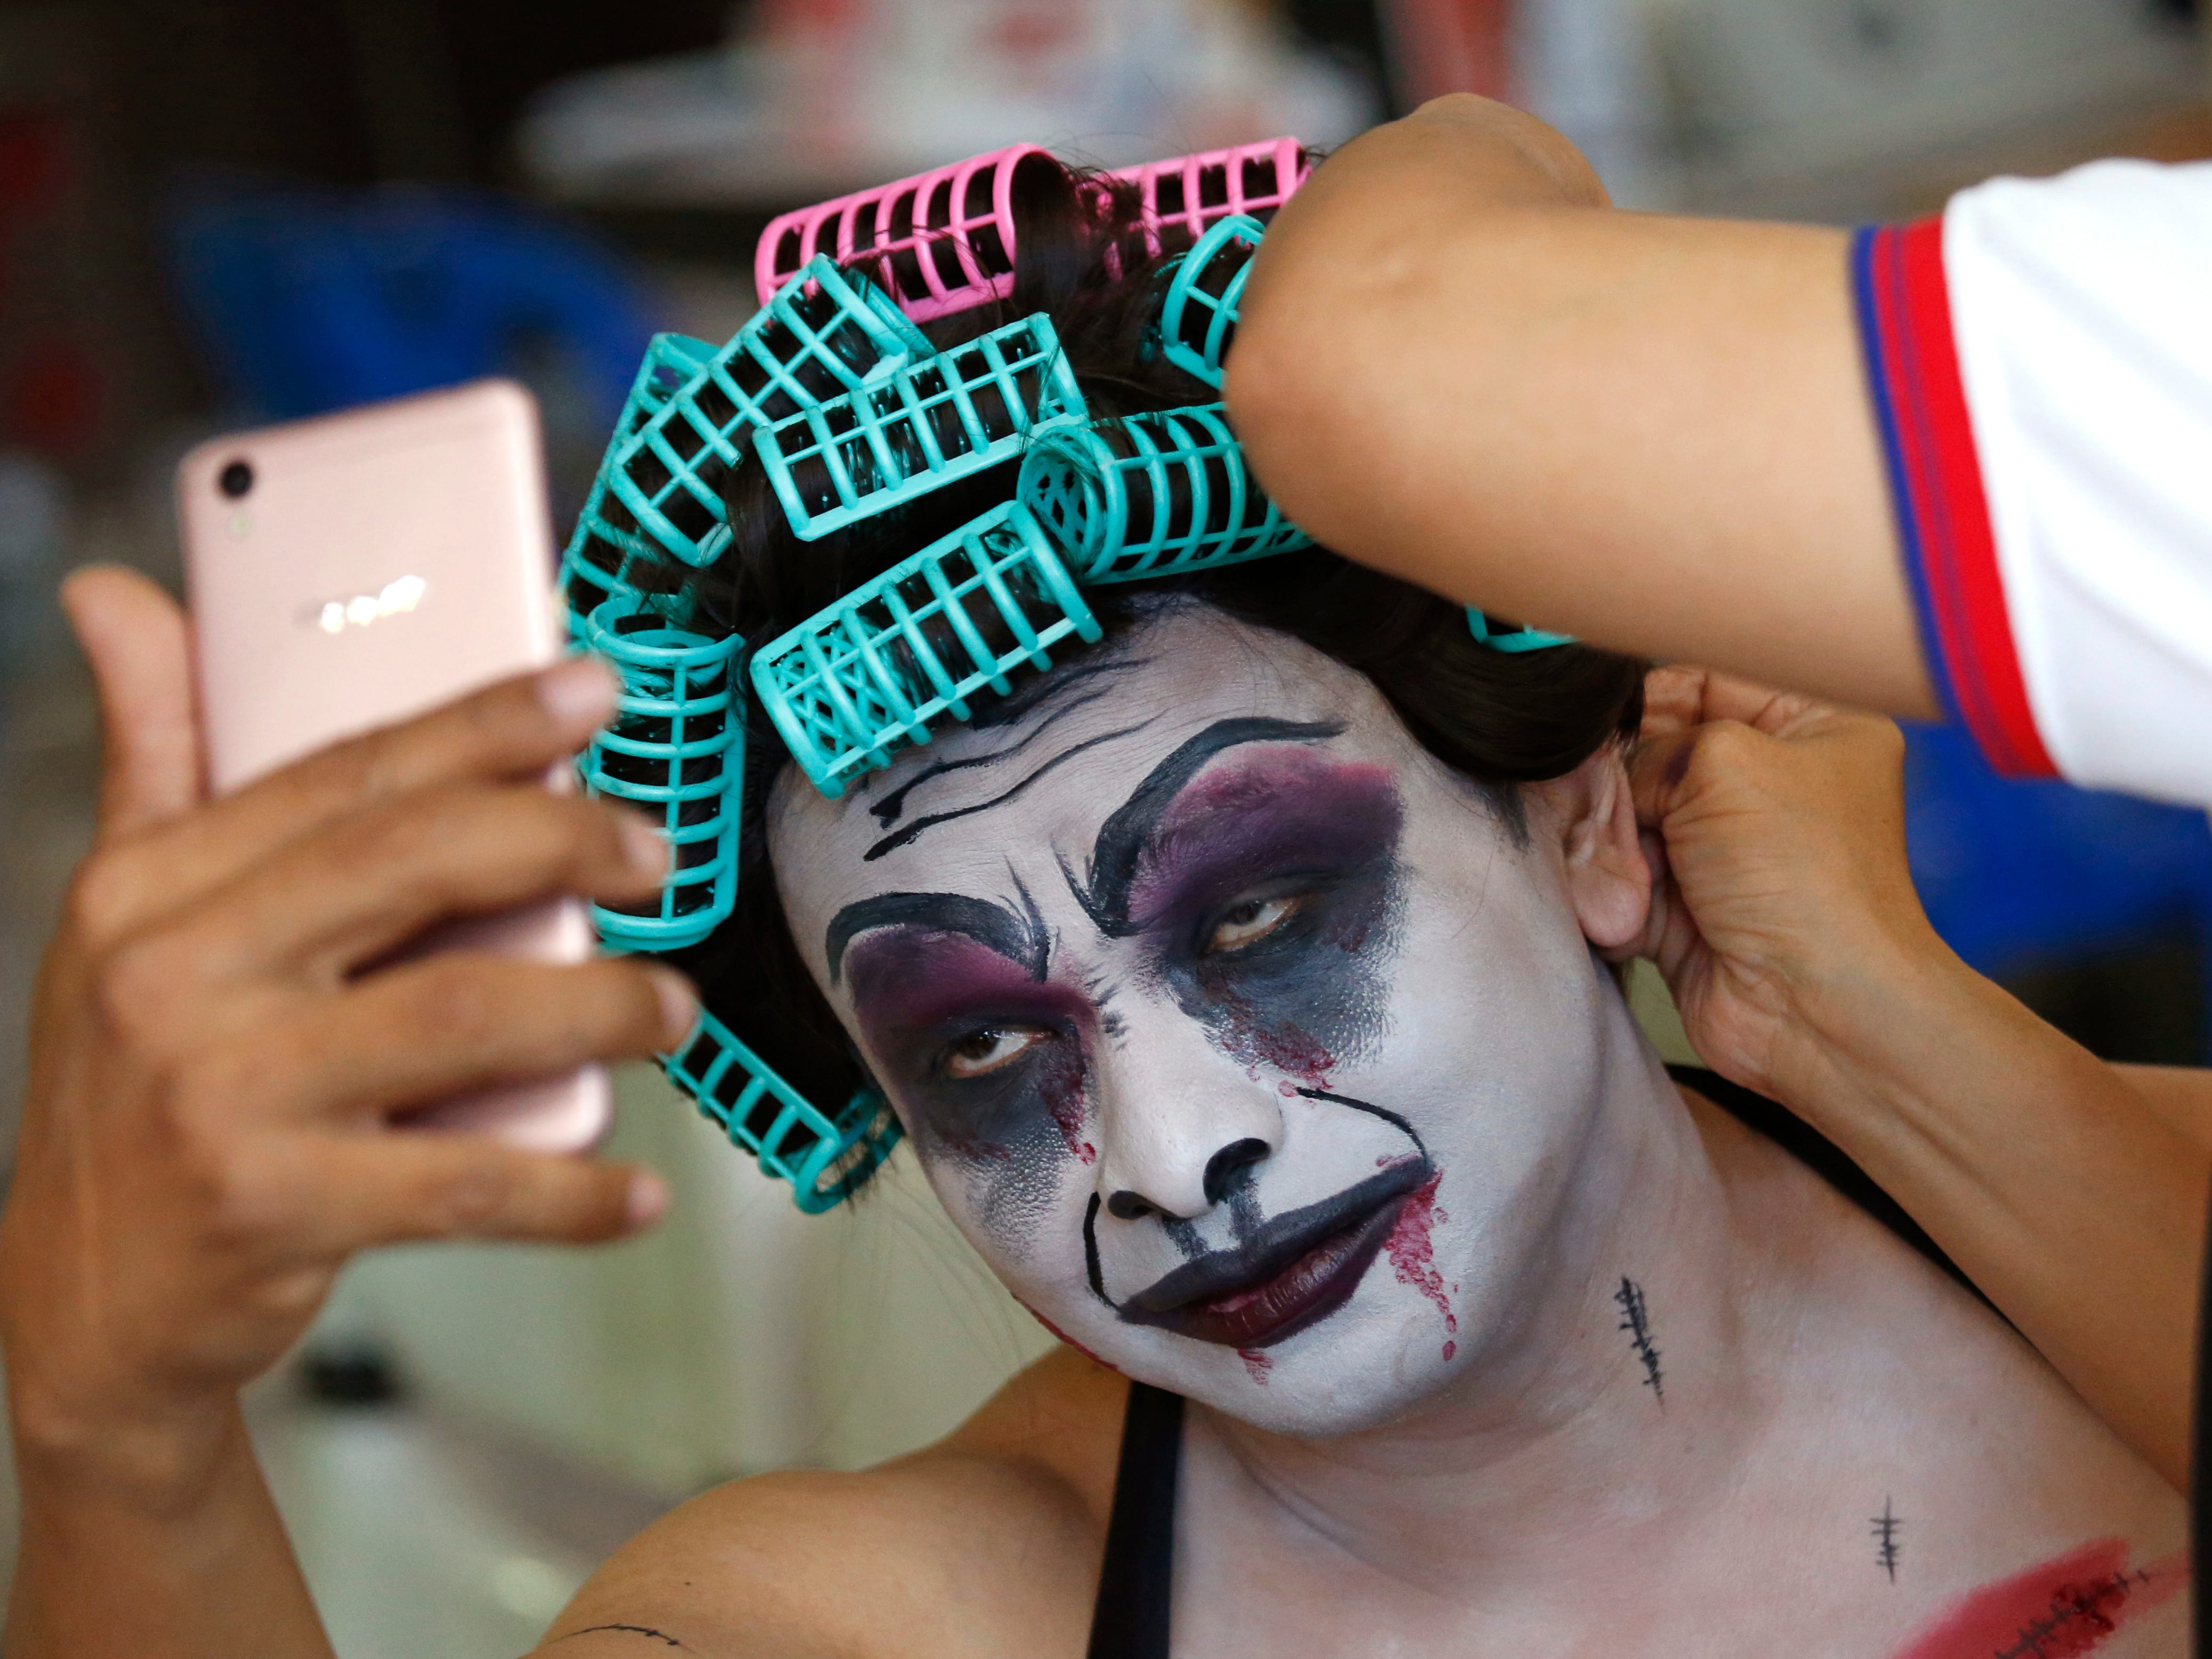 Thanat Chotrat gets made up in a ghost costume for Halloween before donating blood at the Thai Red Cross in Bangkok, Thailand, Wednesday, Oct. 31, 2018.